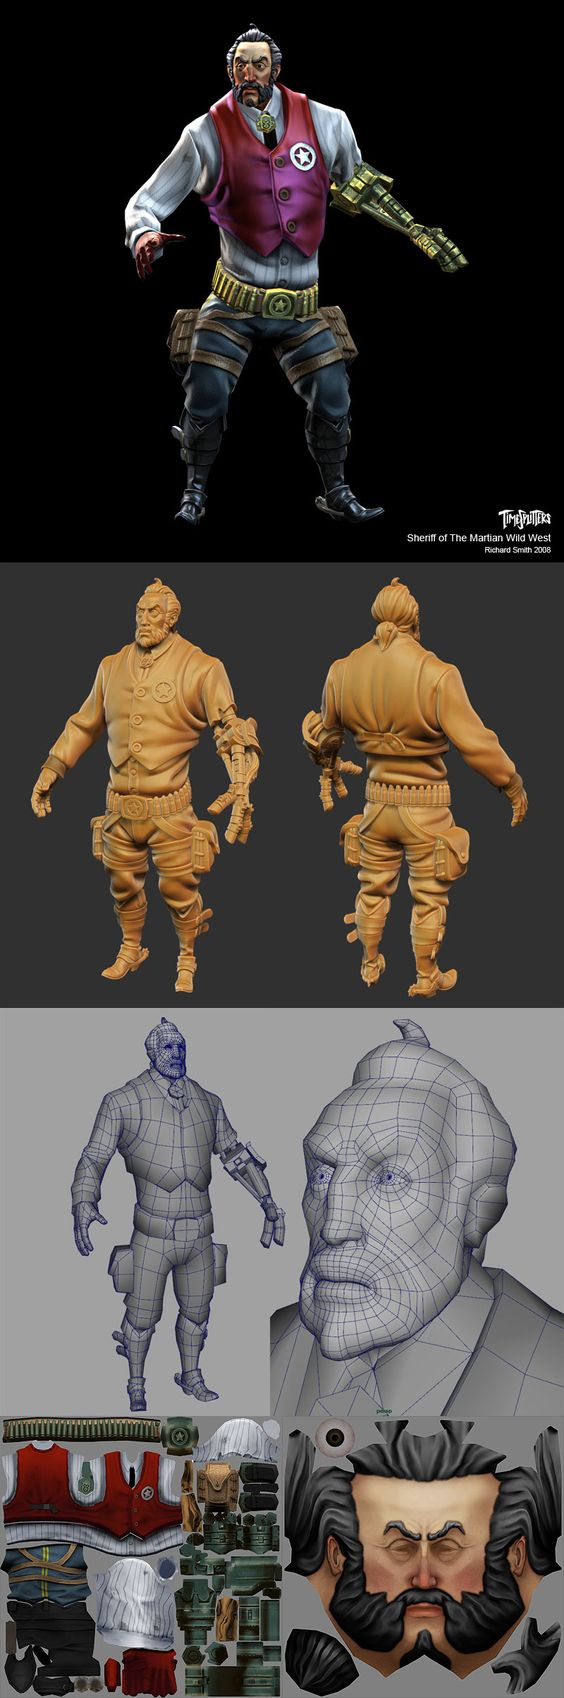 2d Character Design Tutorials : Picked up by cgchips d dcg tutorials and dprinter news